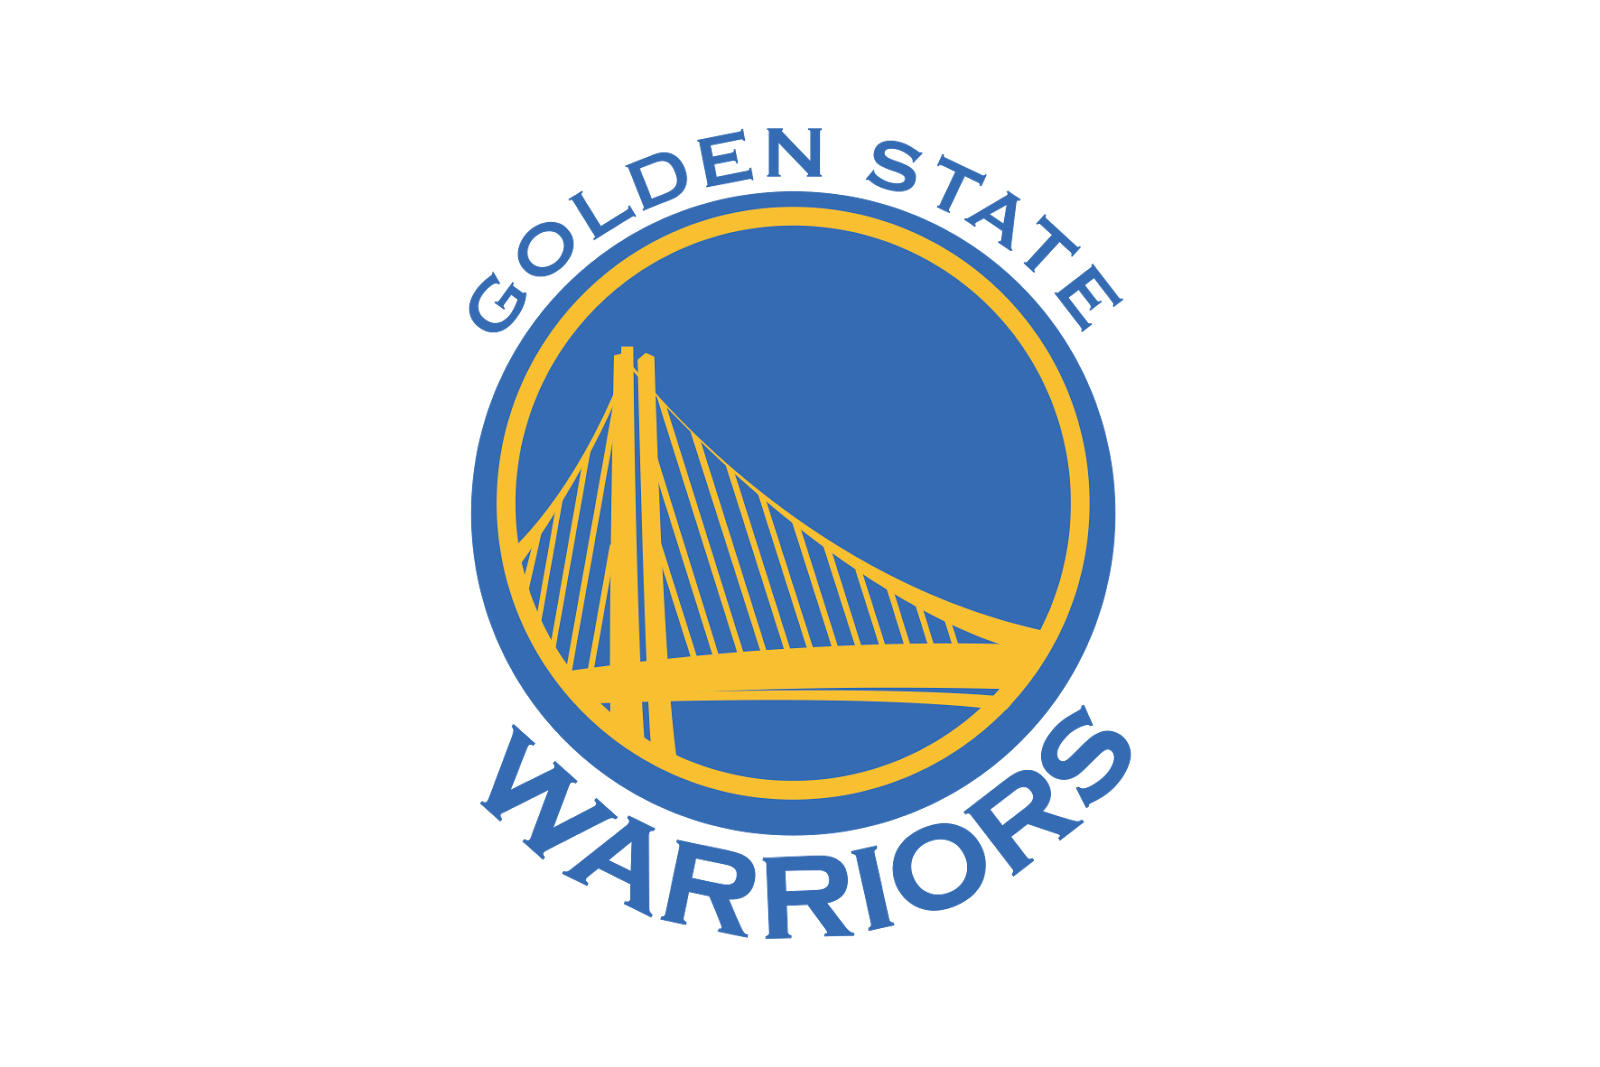 Ranking The Best And Worst Nba Logos From 1 To 30 For The Win